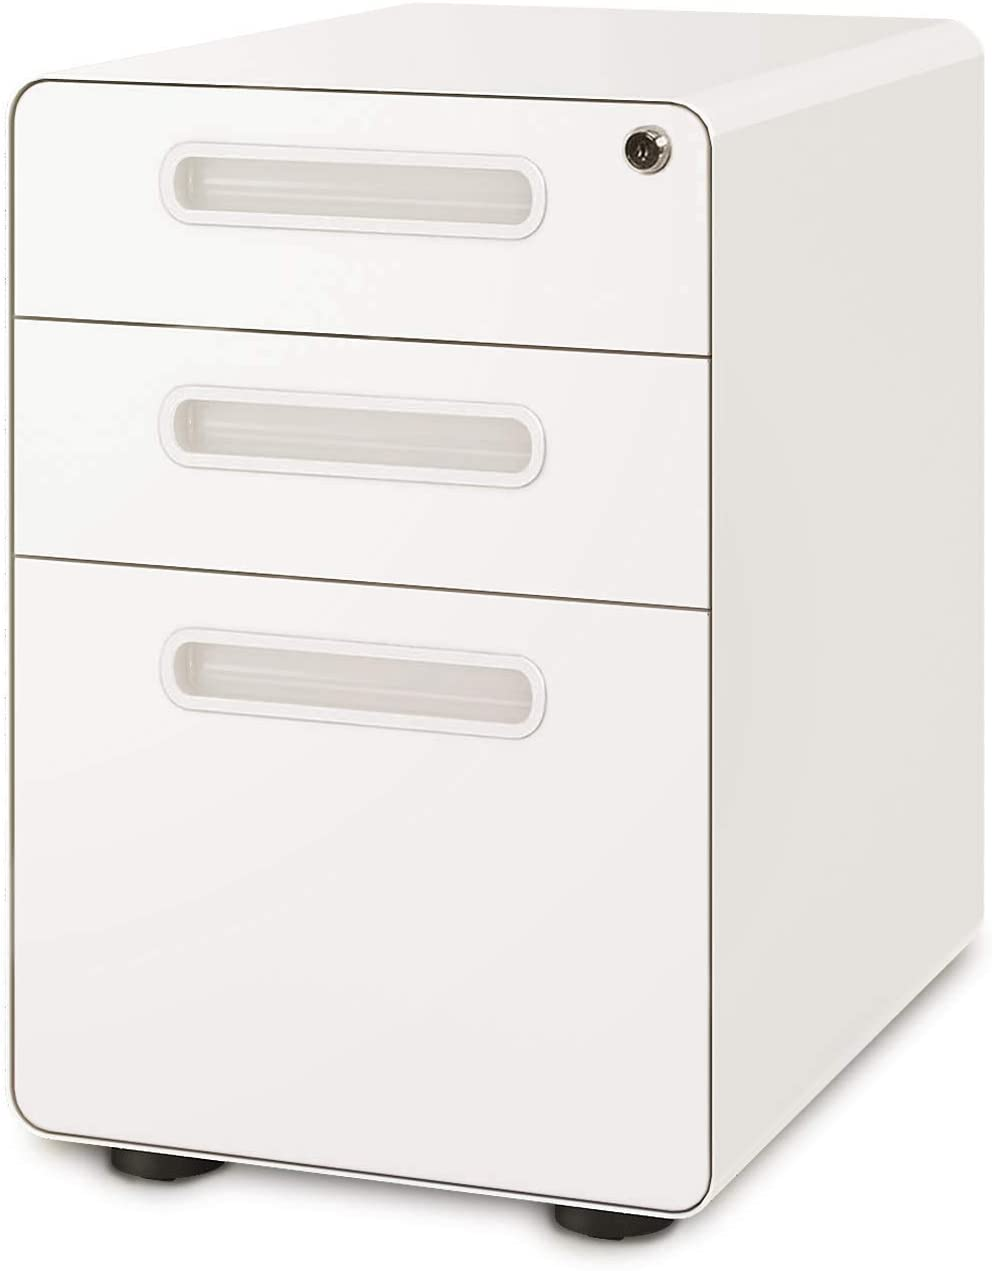 DEVAISE 34-Drawer Mobile File Cabinet with Anti-tilt Mechanism, Legal/Letter  Size, White